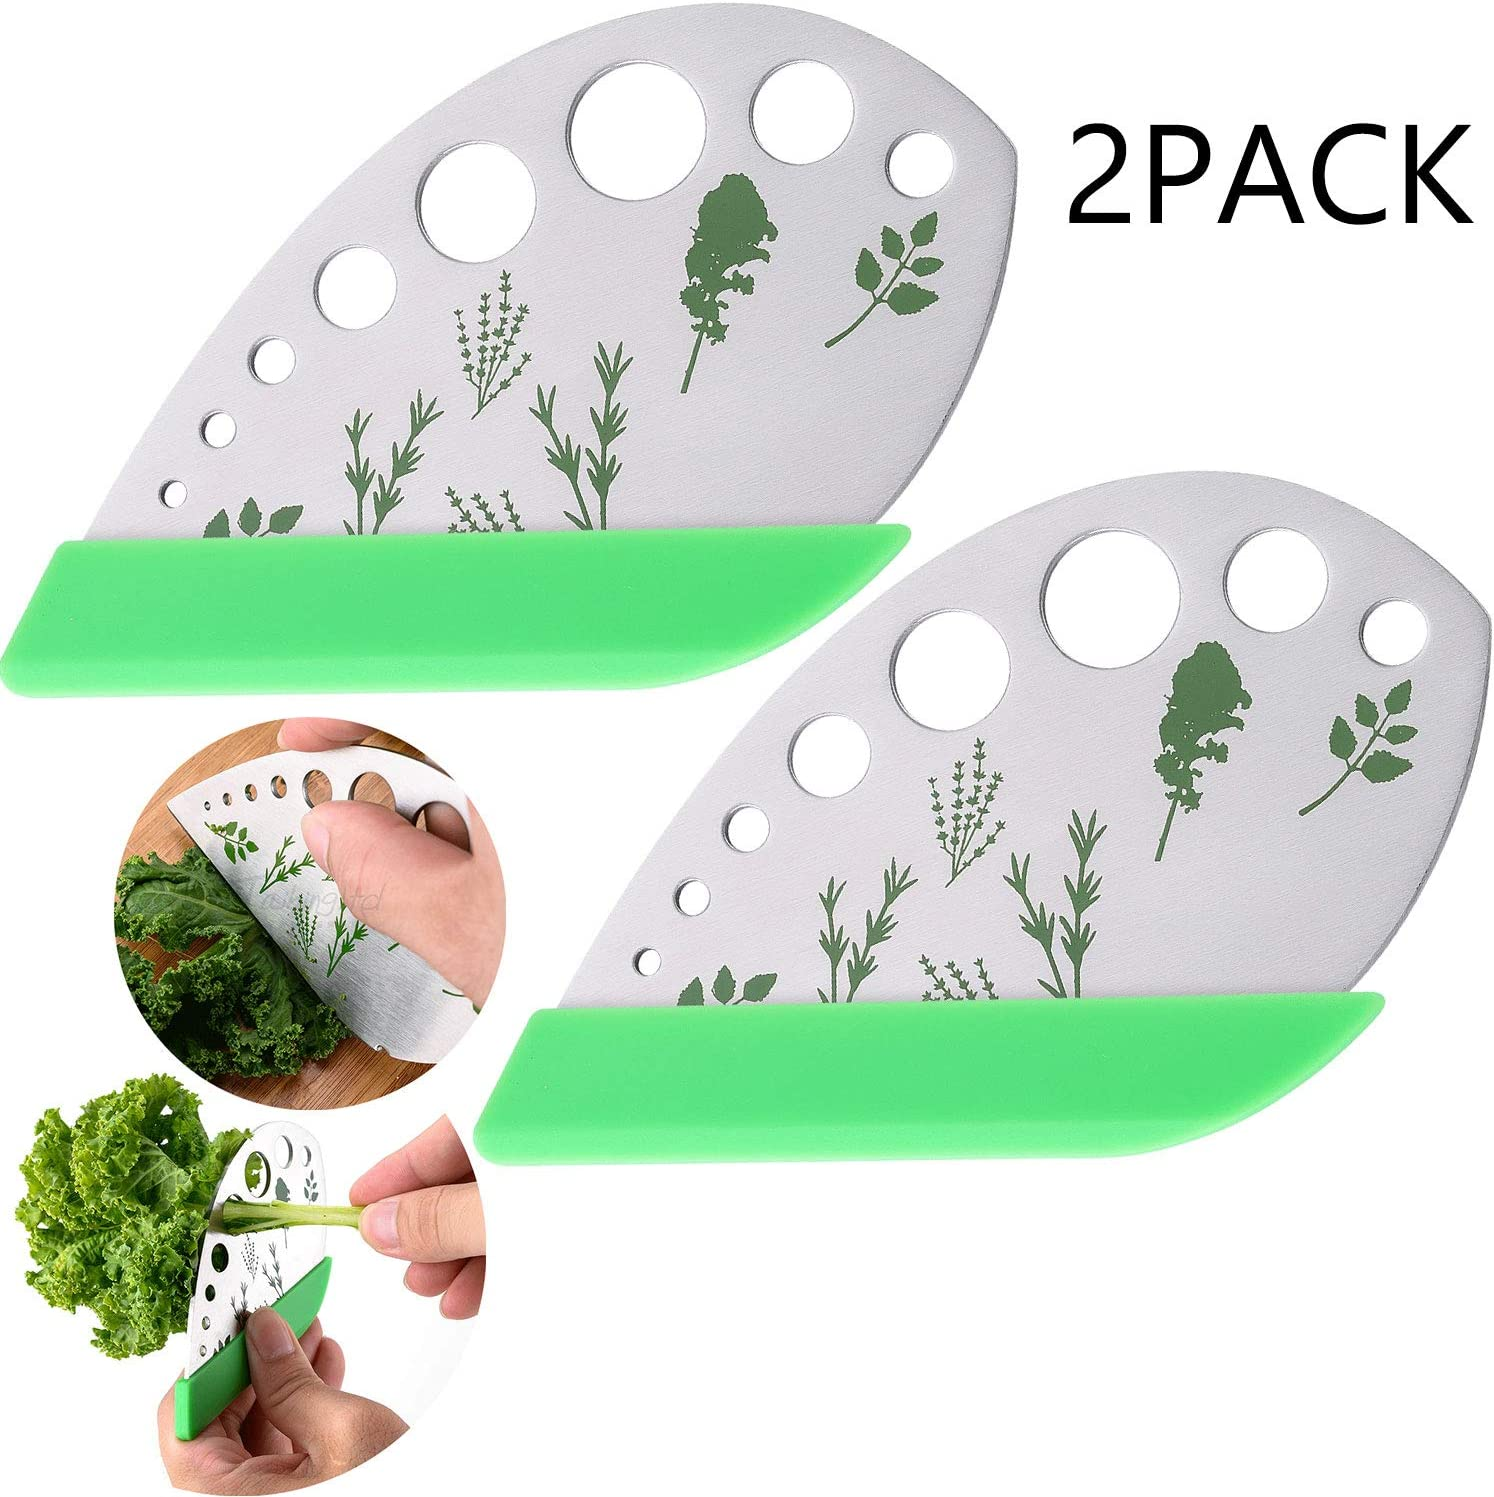 9holes 2 pack Chard Rosemary Basil Leaf Herb Stripper Thyme 2 in 1 design with Blade Collard Greens Stainless Steel Kitchen Herb Leaf Stripping Tool for Kale